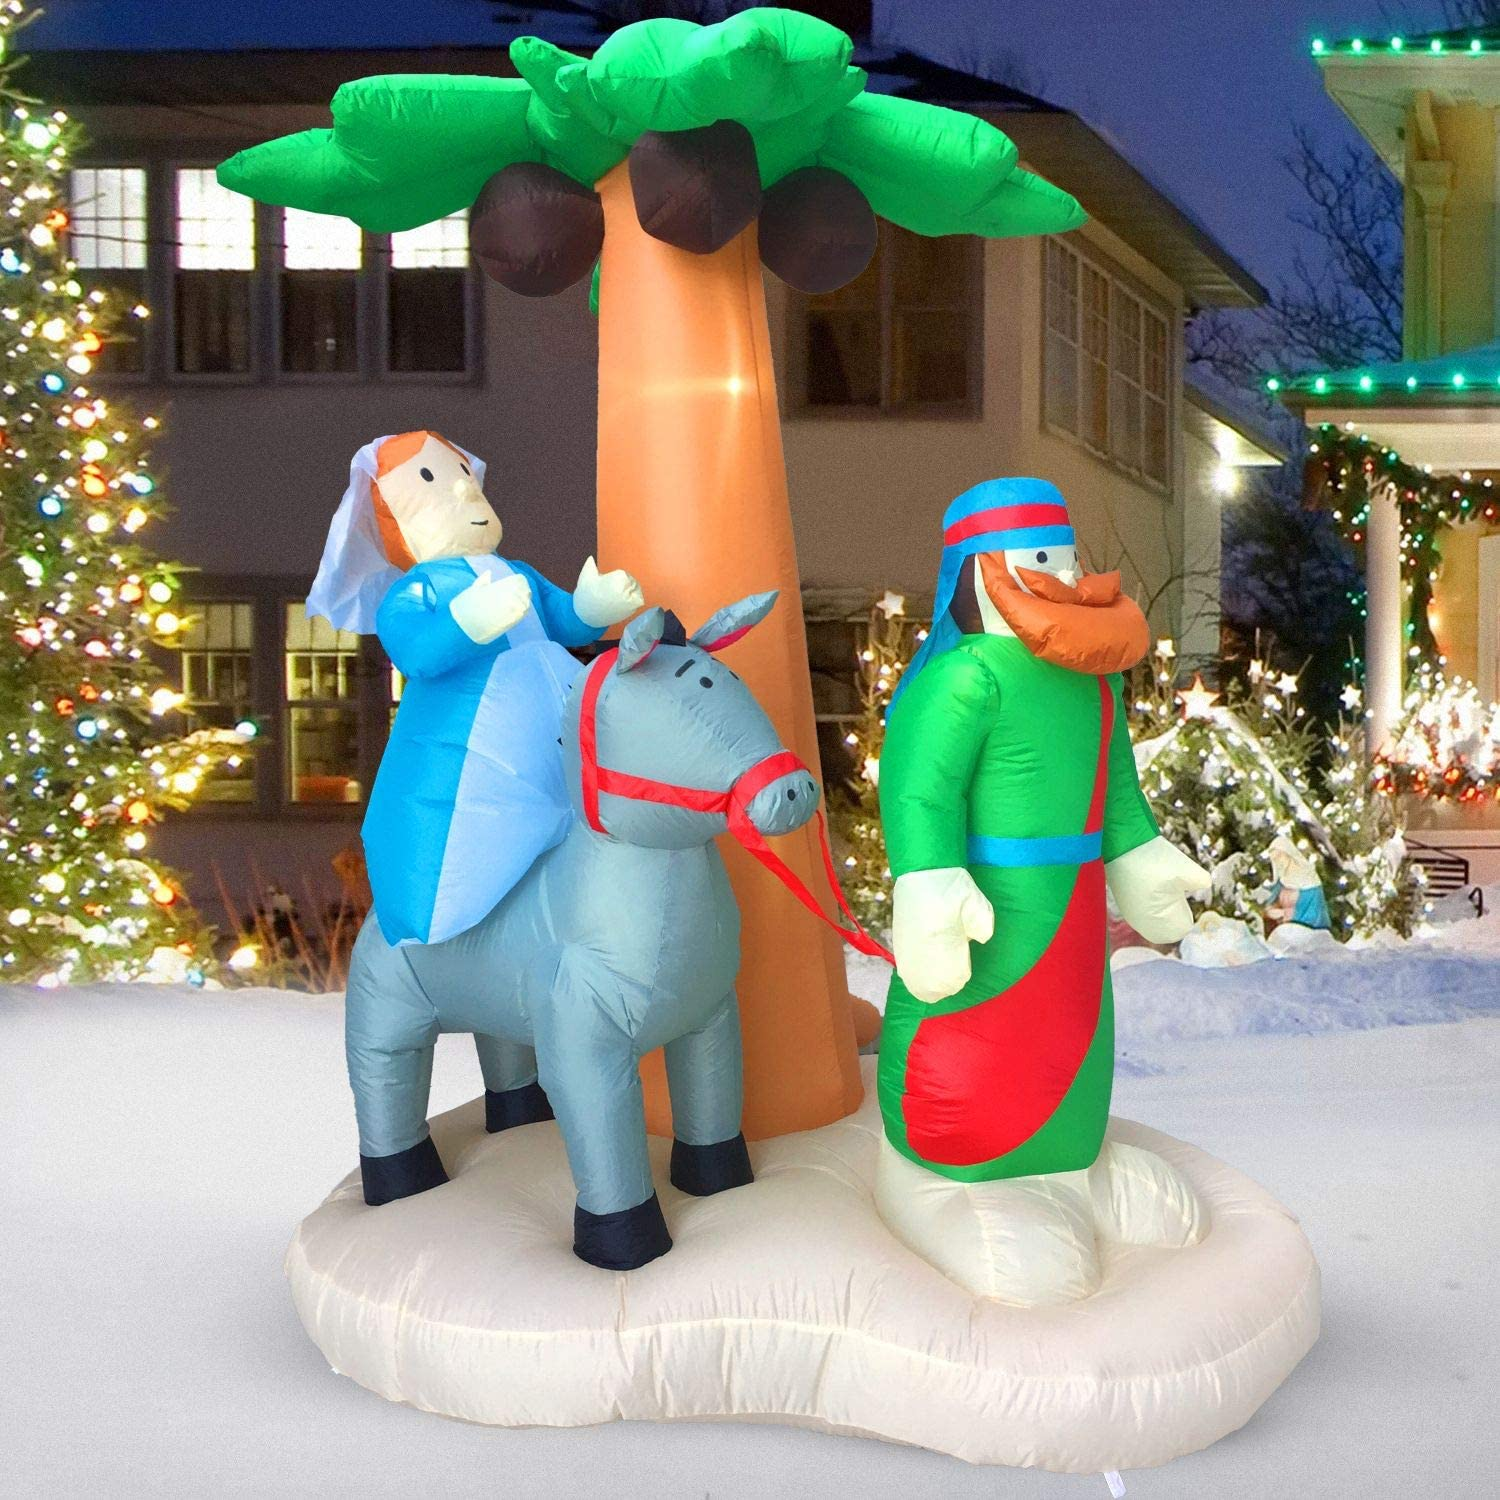 HappyThings Christmas Inflatables 2021new shipping free shipping Outdoor Y Decorations for Popular overseas The